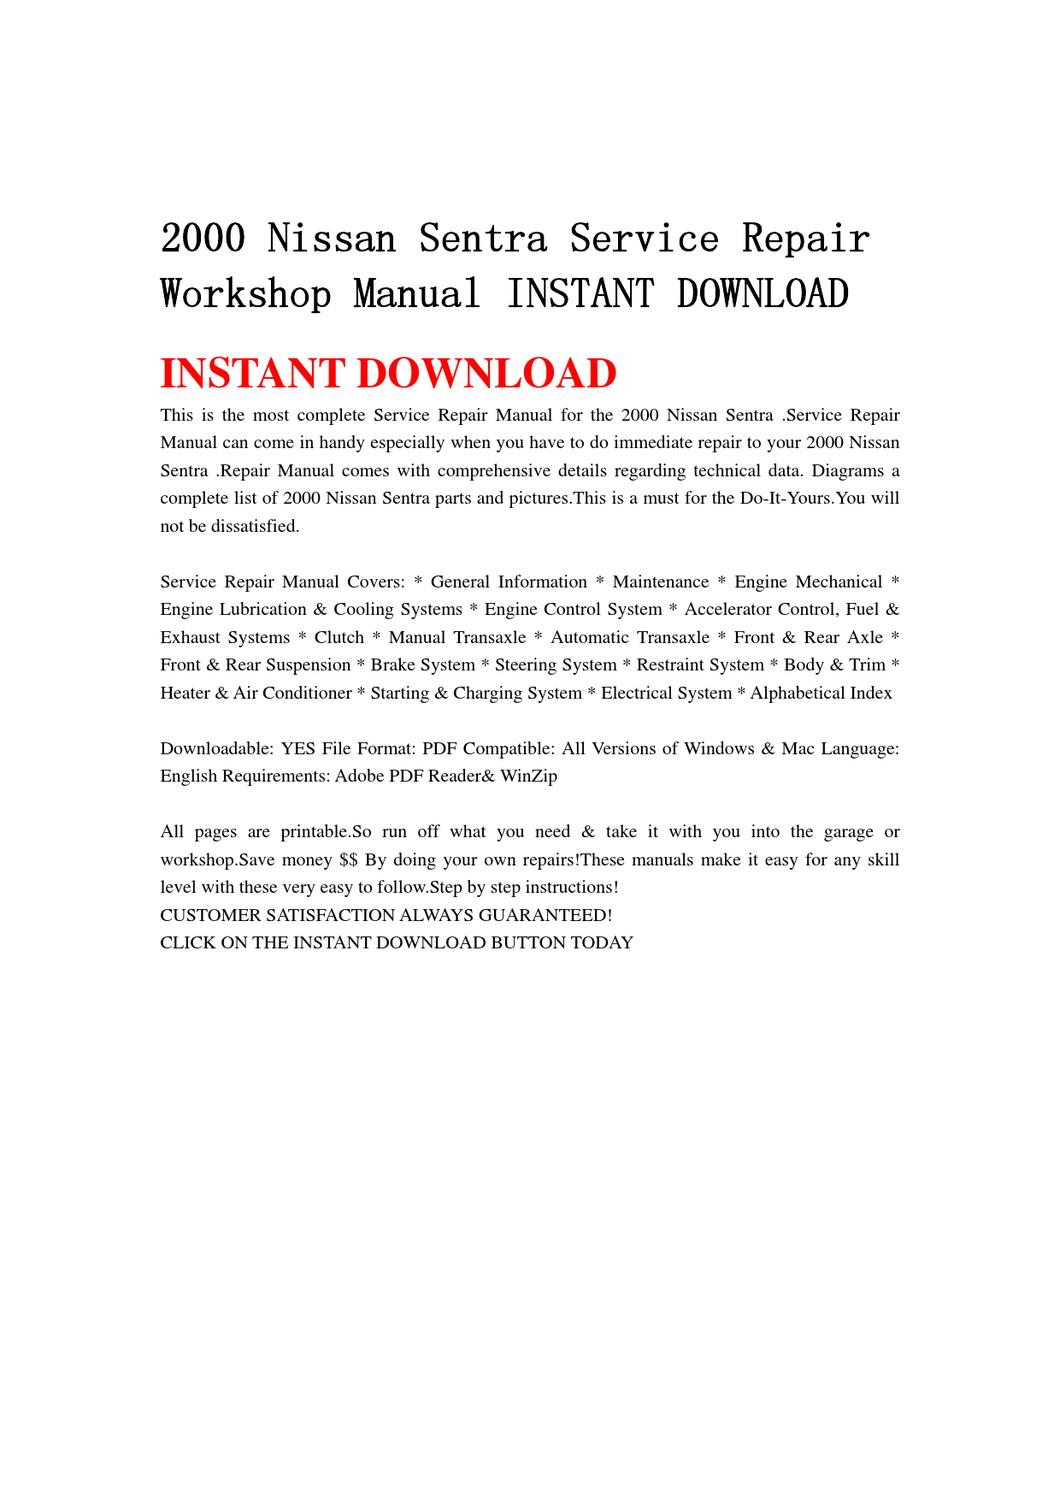 2000 Nissan Sentra Service Repair Workshop Manual INSTANT DOWNLOAD by yu  jiew - issuu